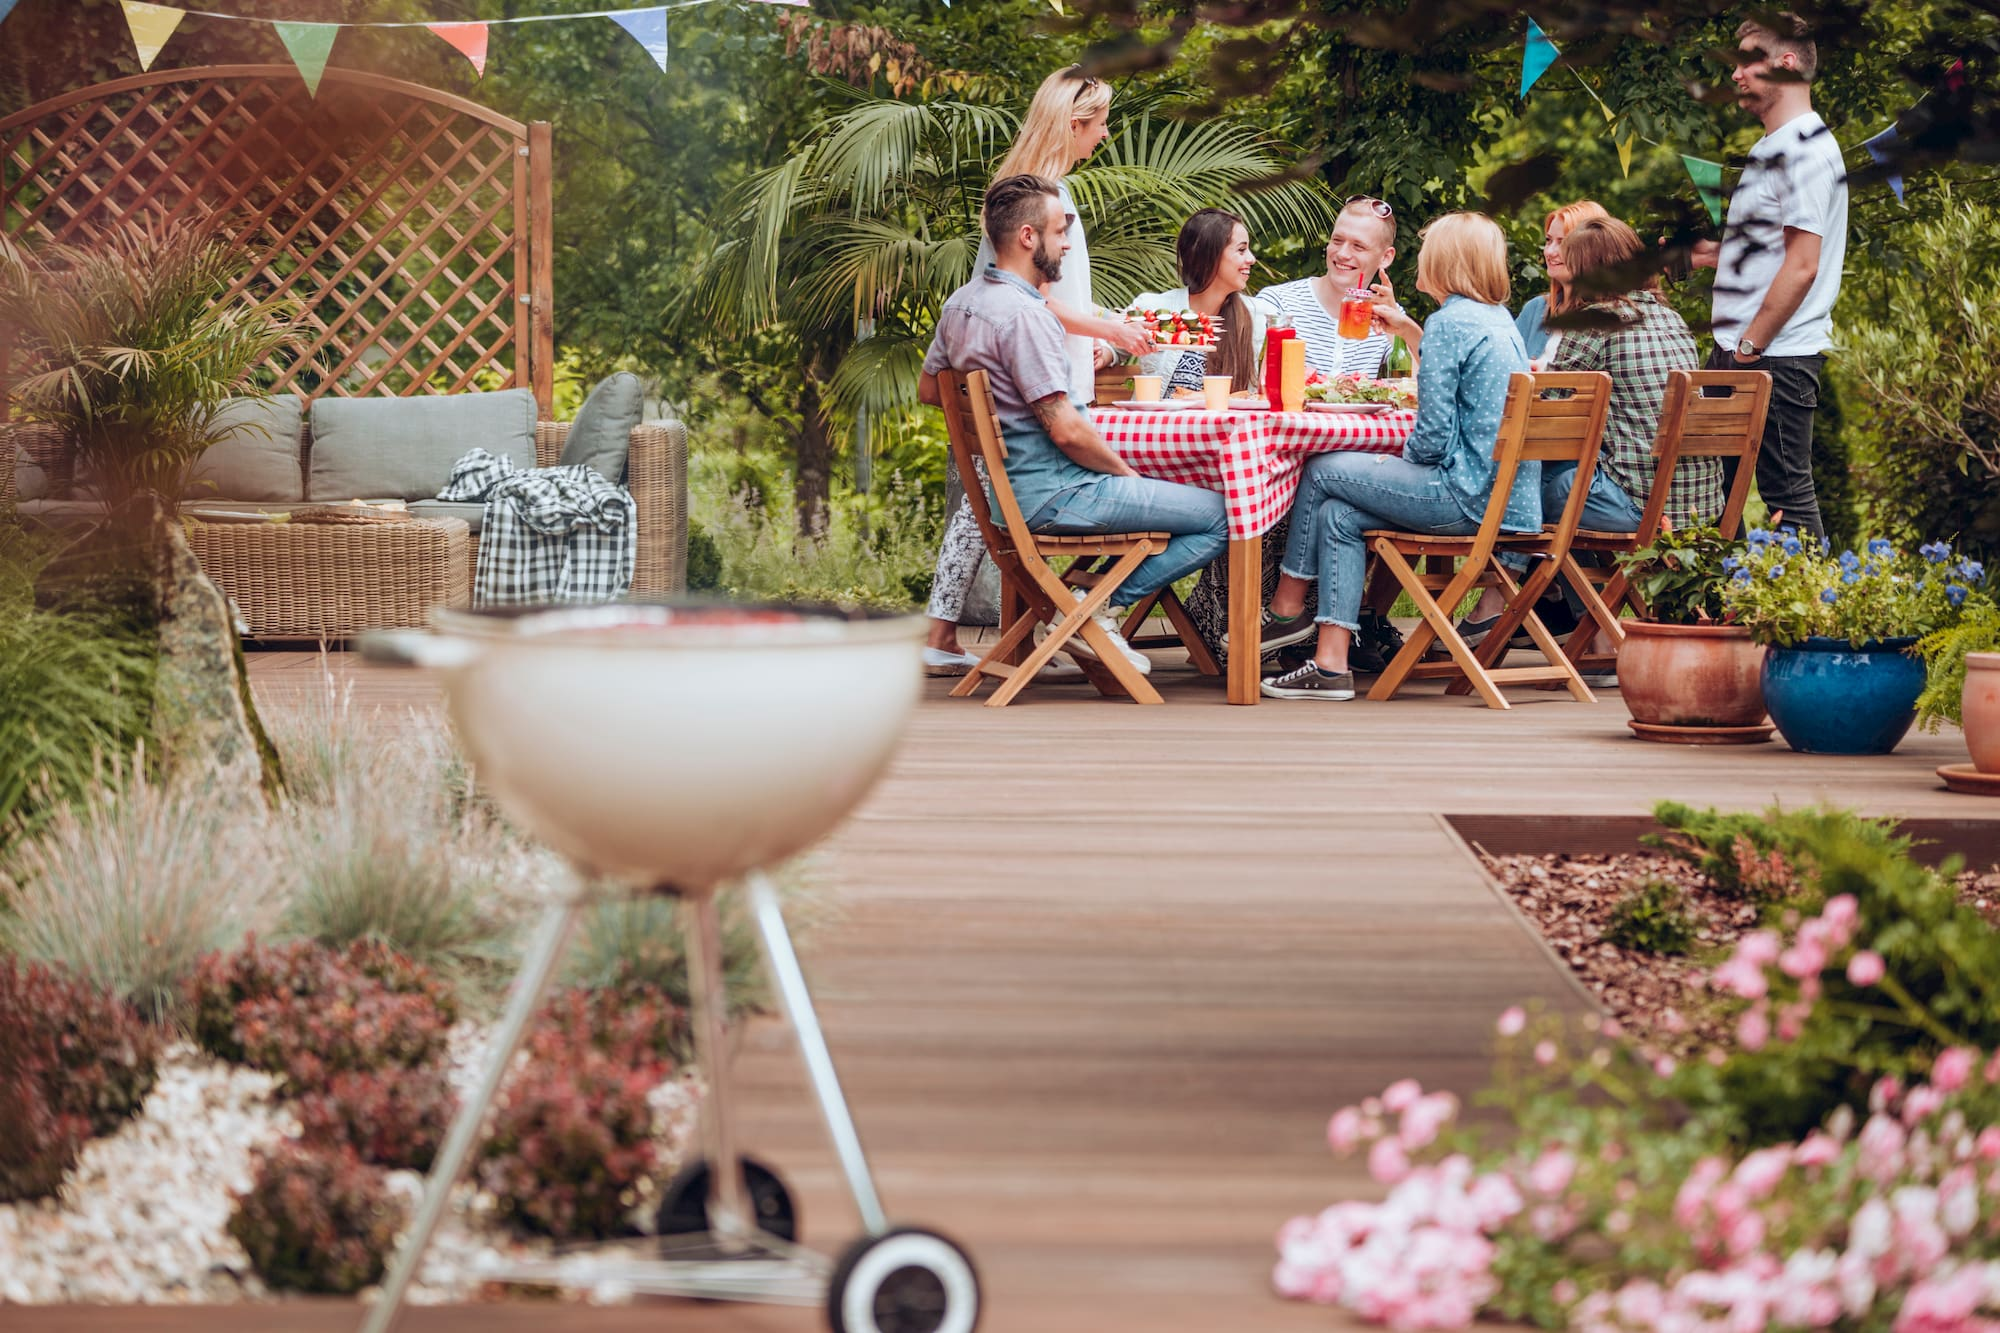 Friends sitting at table in backyard with barbecue in foreground